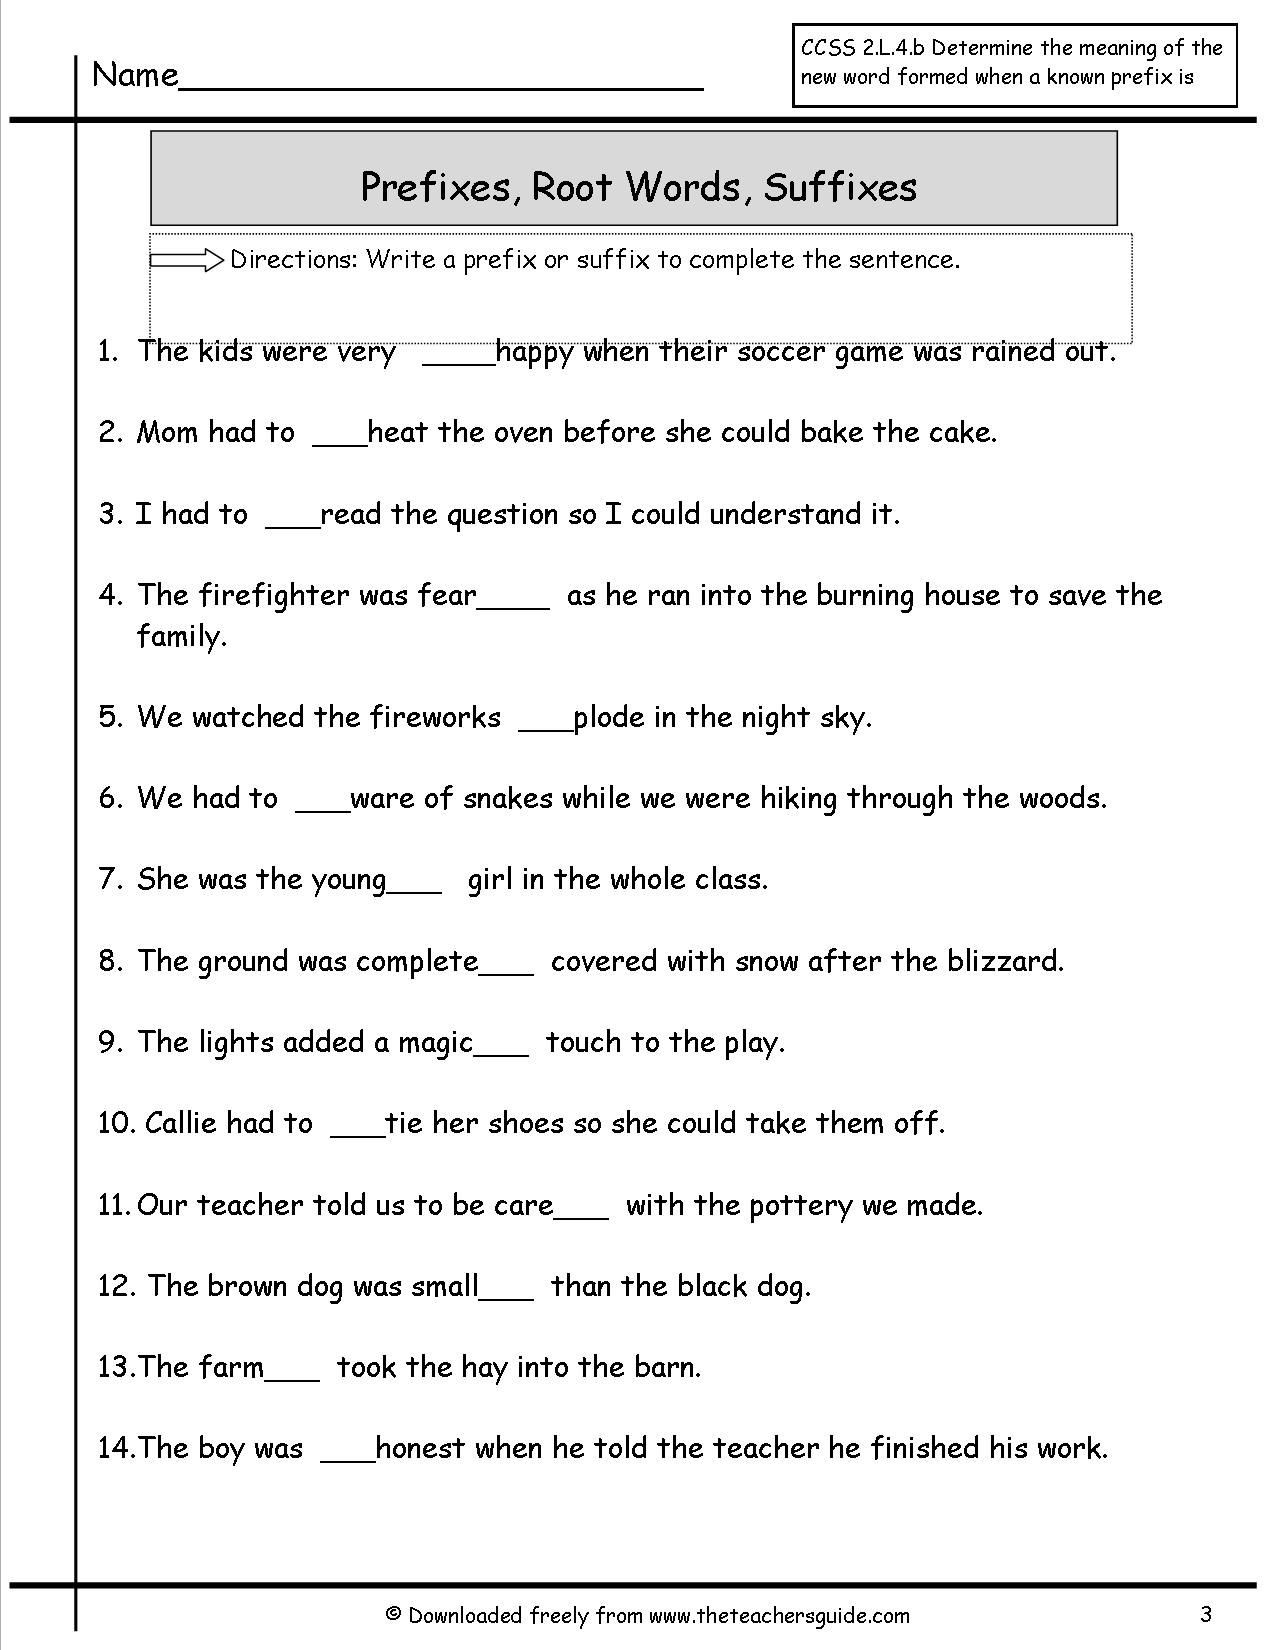 Suffixes Worksheets 4th Grade Prefixes Suffixes Worksheet